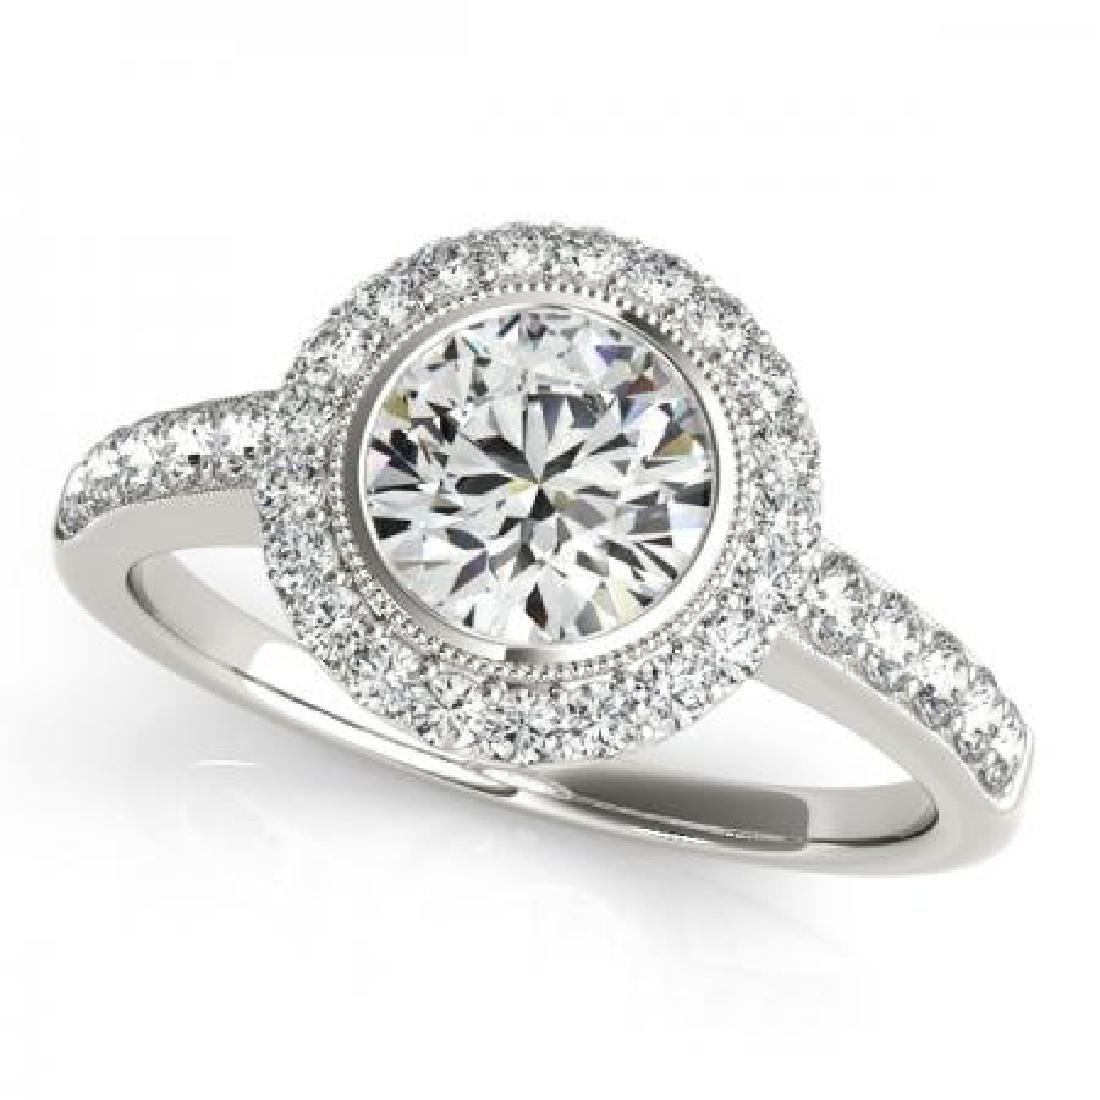 CERTIFIED PLATINUM 1.11 CT G-H/VS-SI1 DIAMOND HALO ENGA